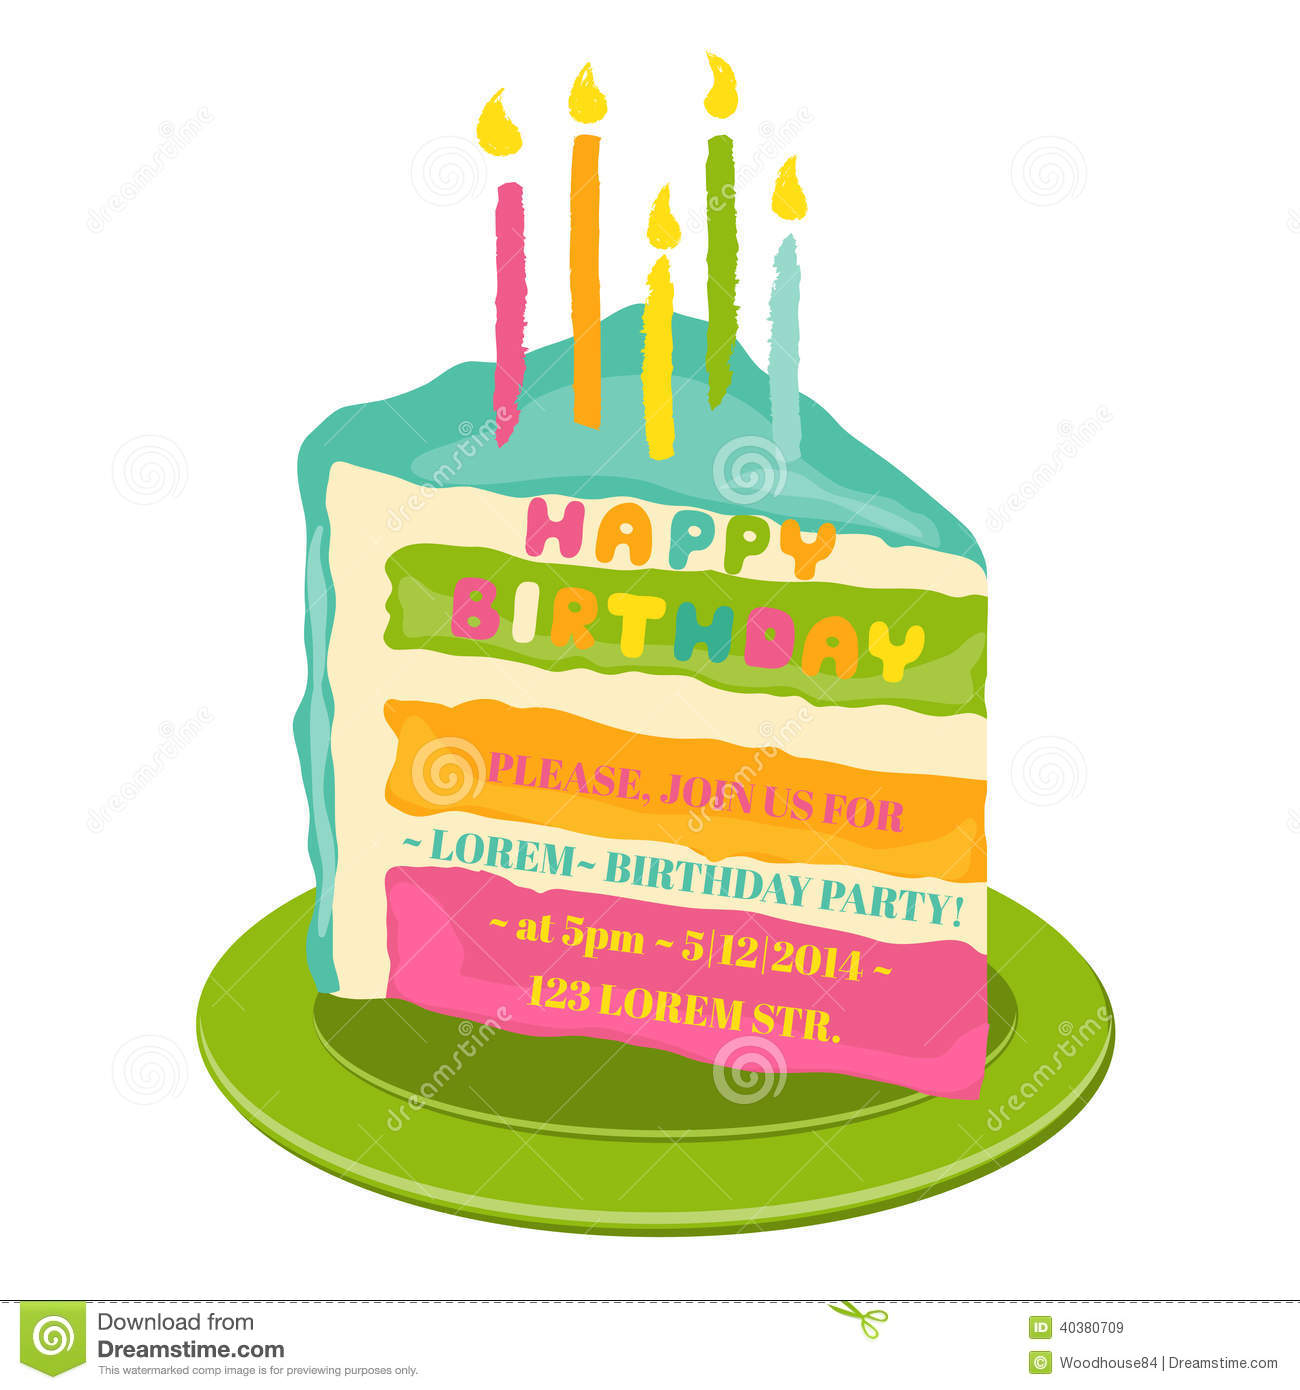 Happy birthday and party invitation card stock vector happy birthday and party invitation card stopboris Gallery